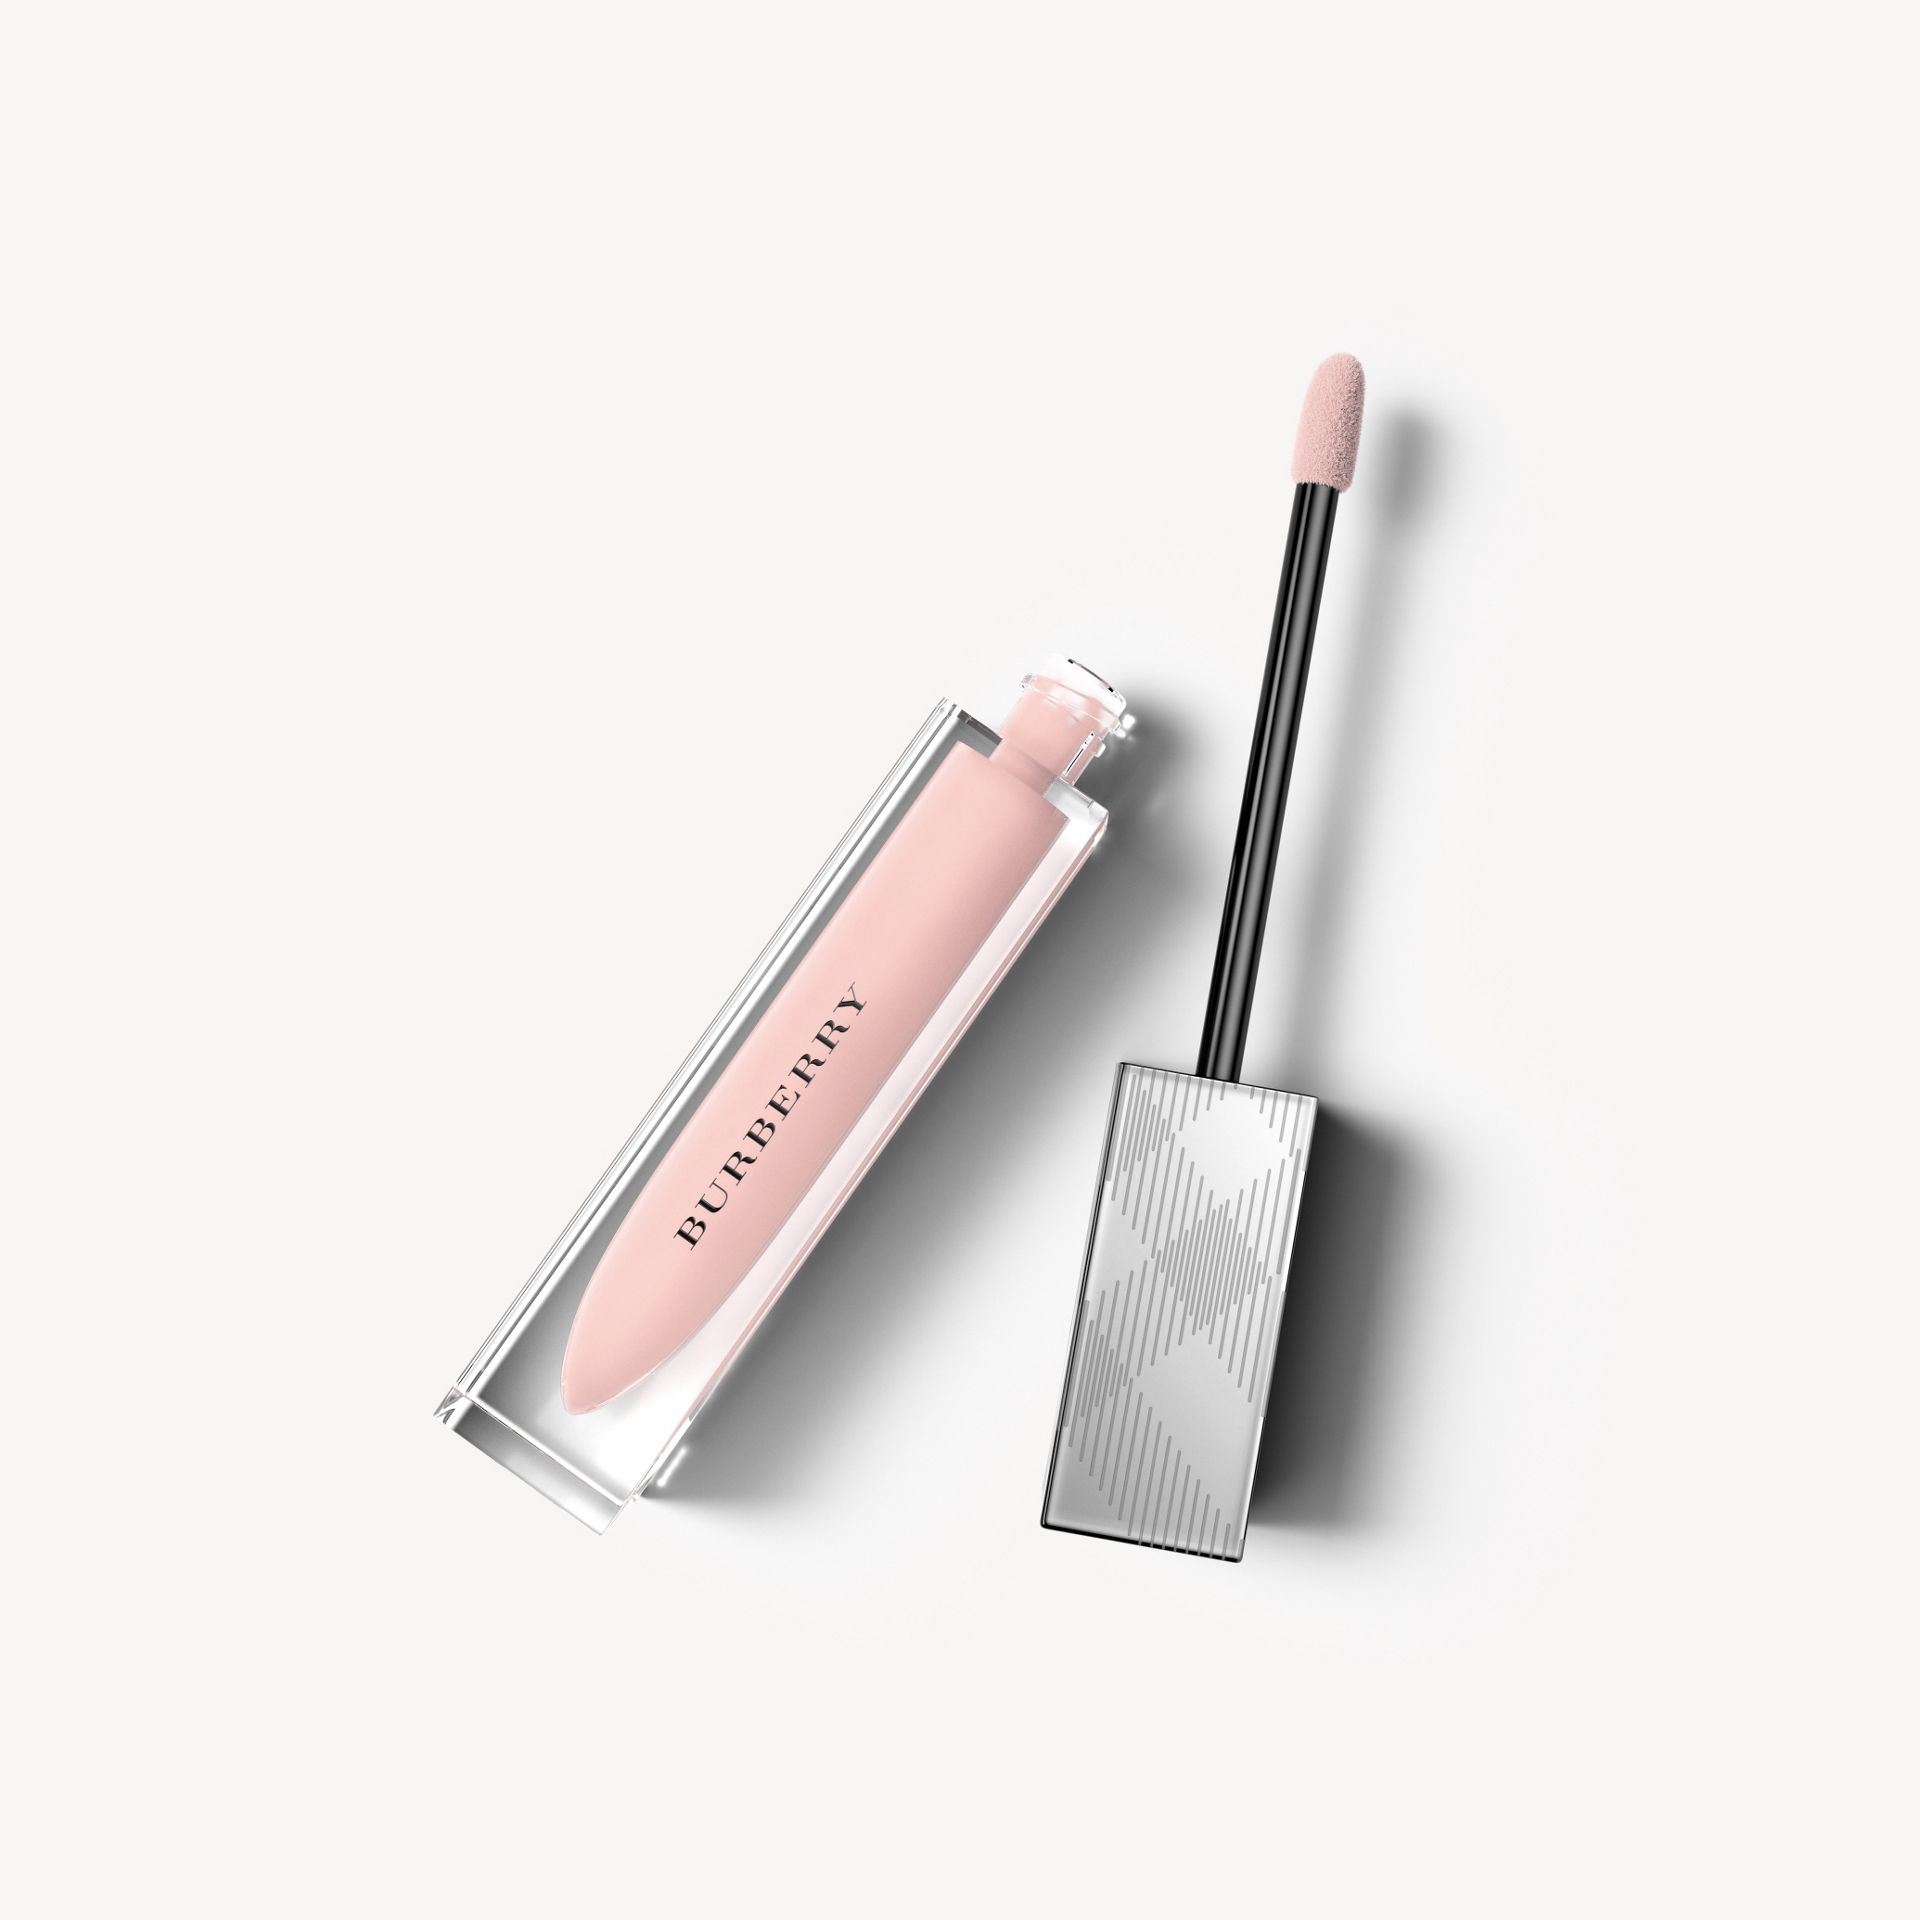 Burberry Kisses Gloss - Cameo Nude No.21 - gallery image 1